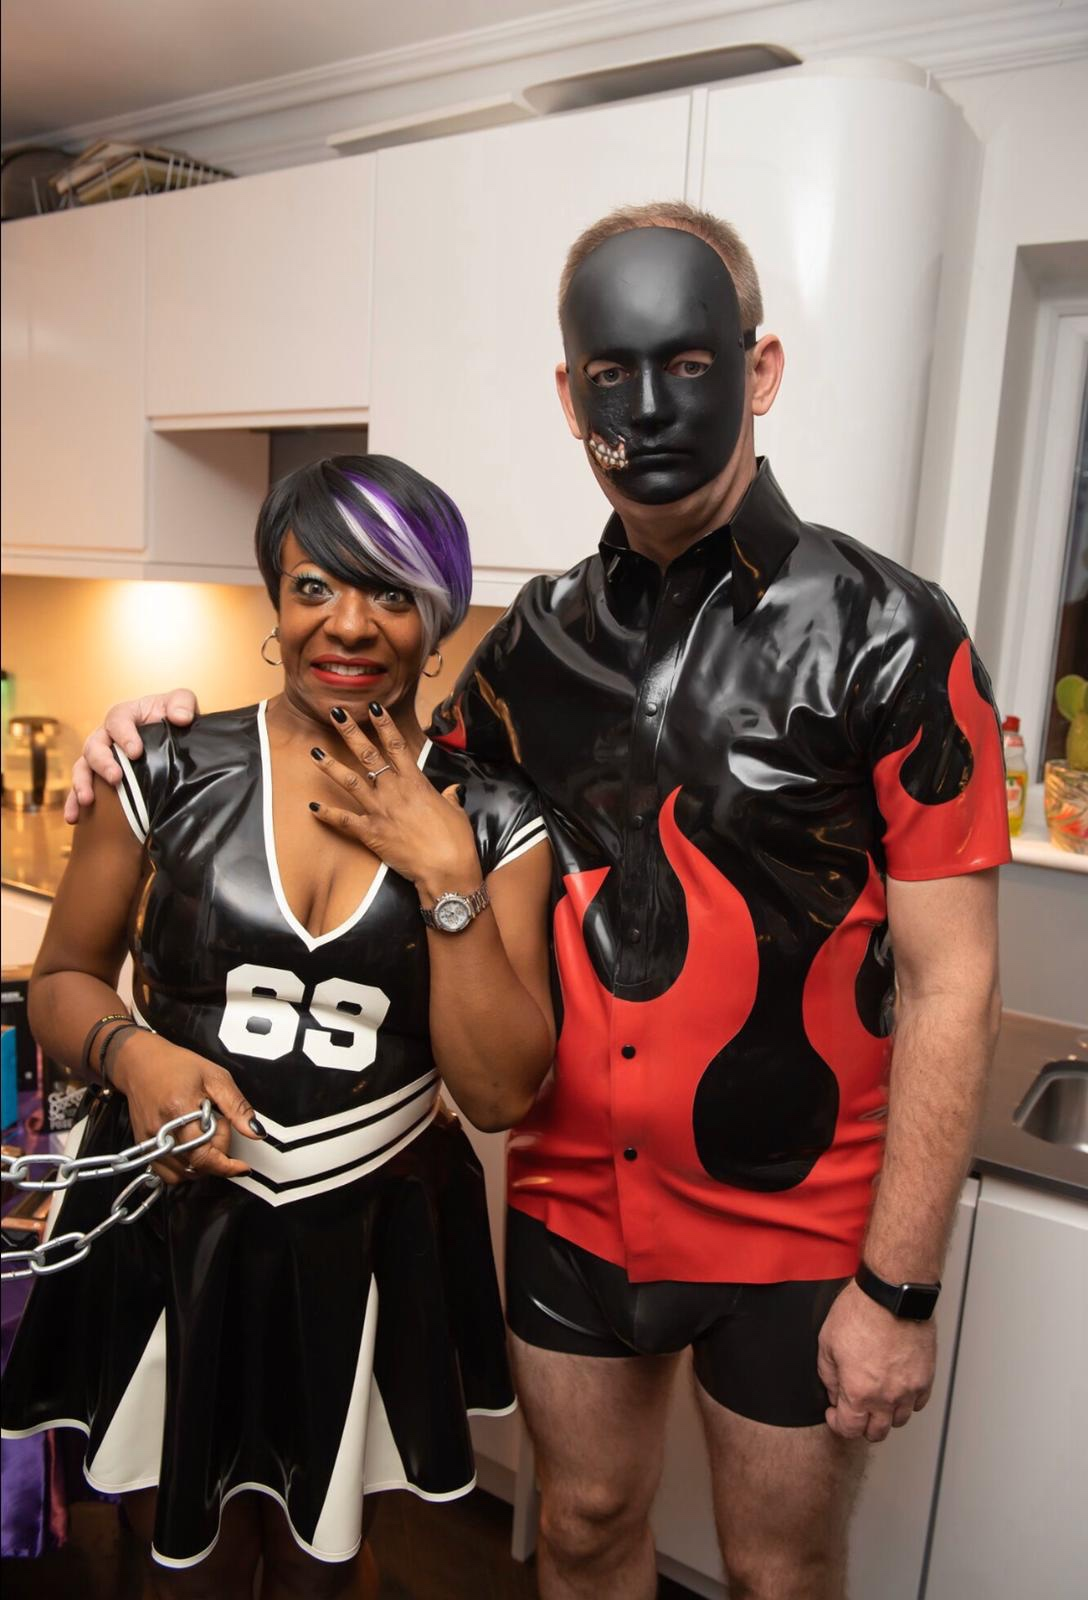 A woman in a rubber dress and a man in a mask and rubber attire stand together